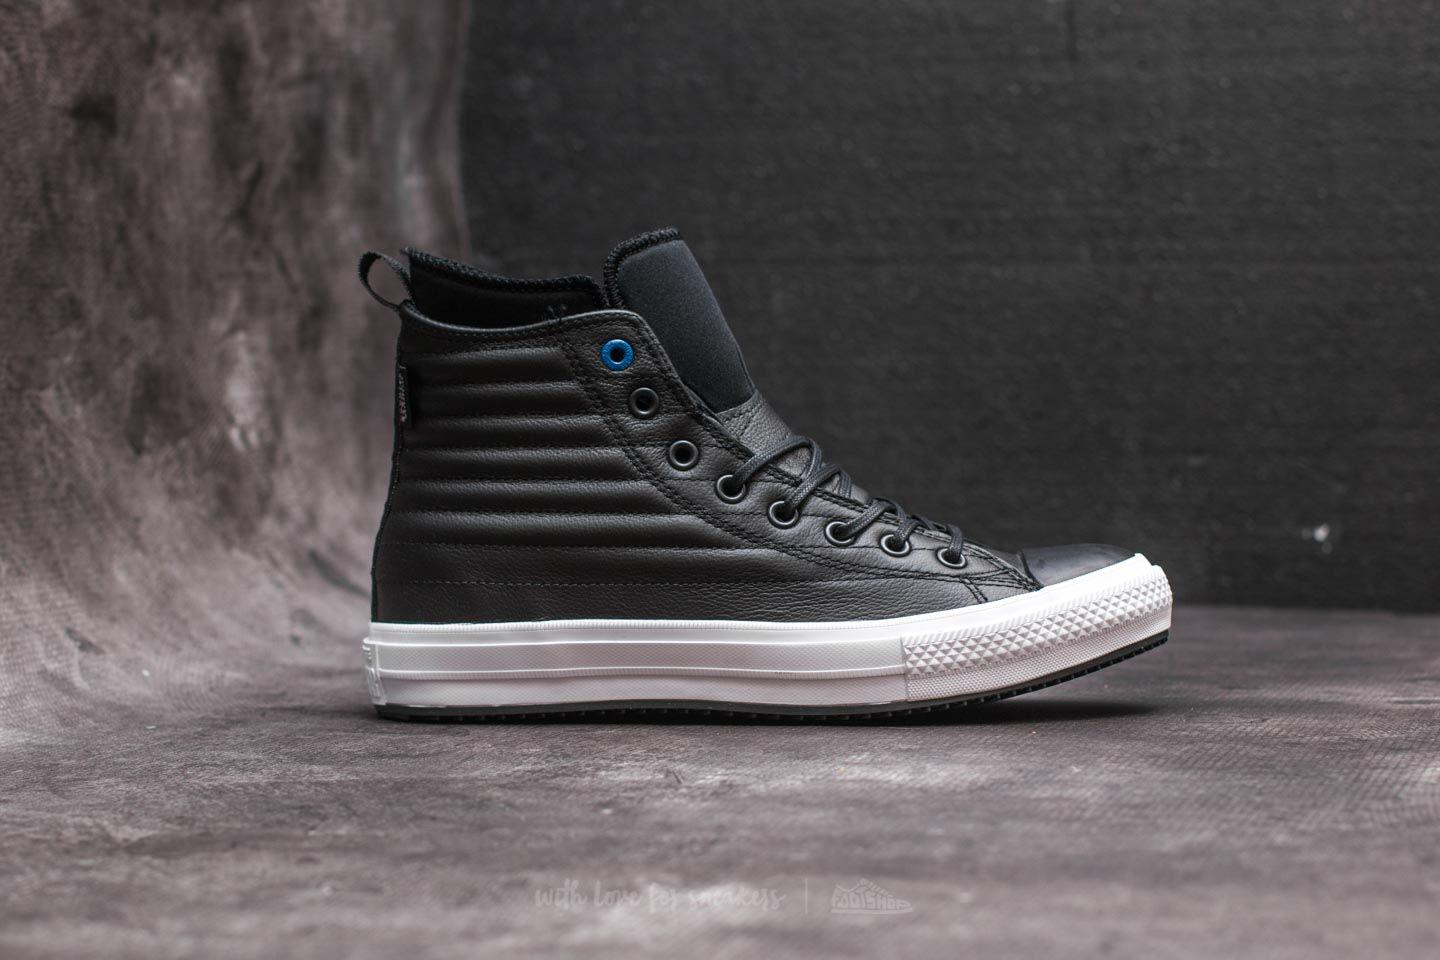 converse waterproof boot quilted leather